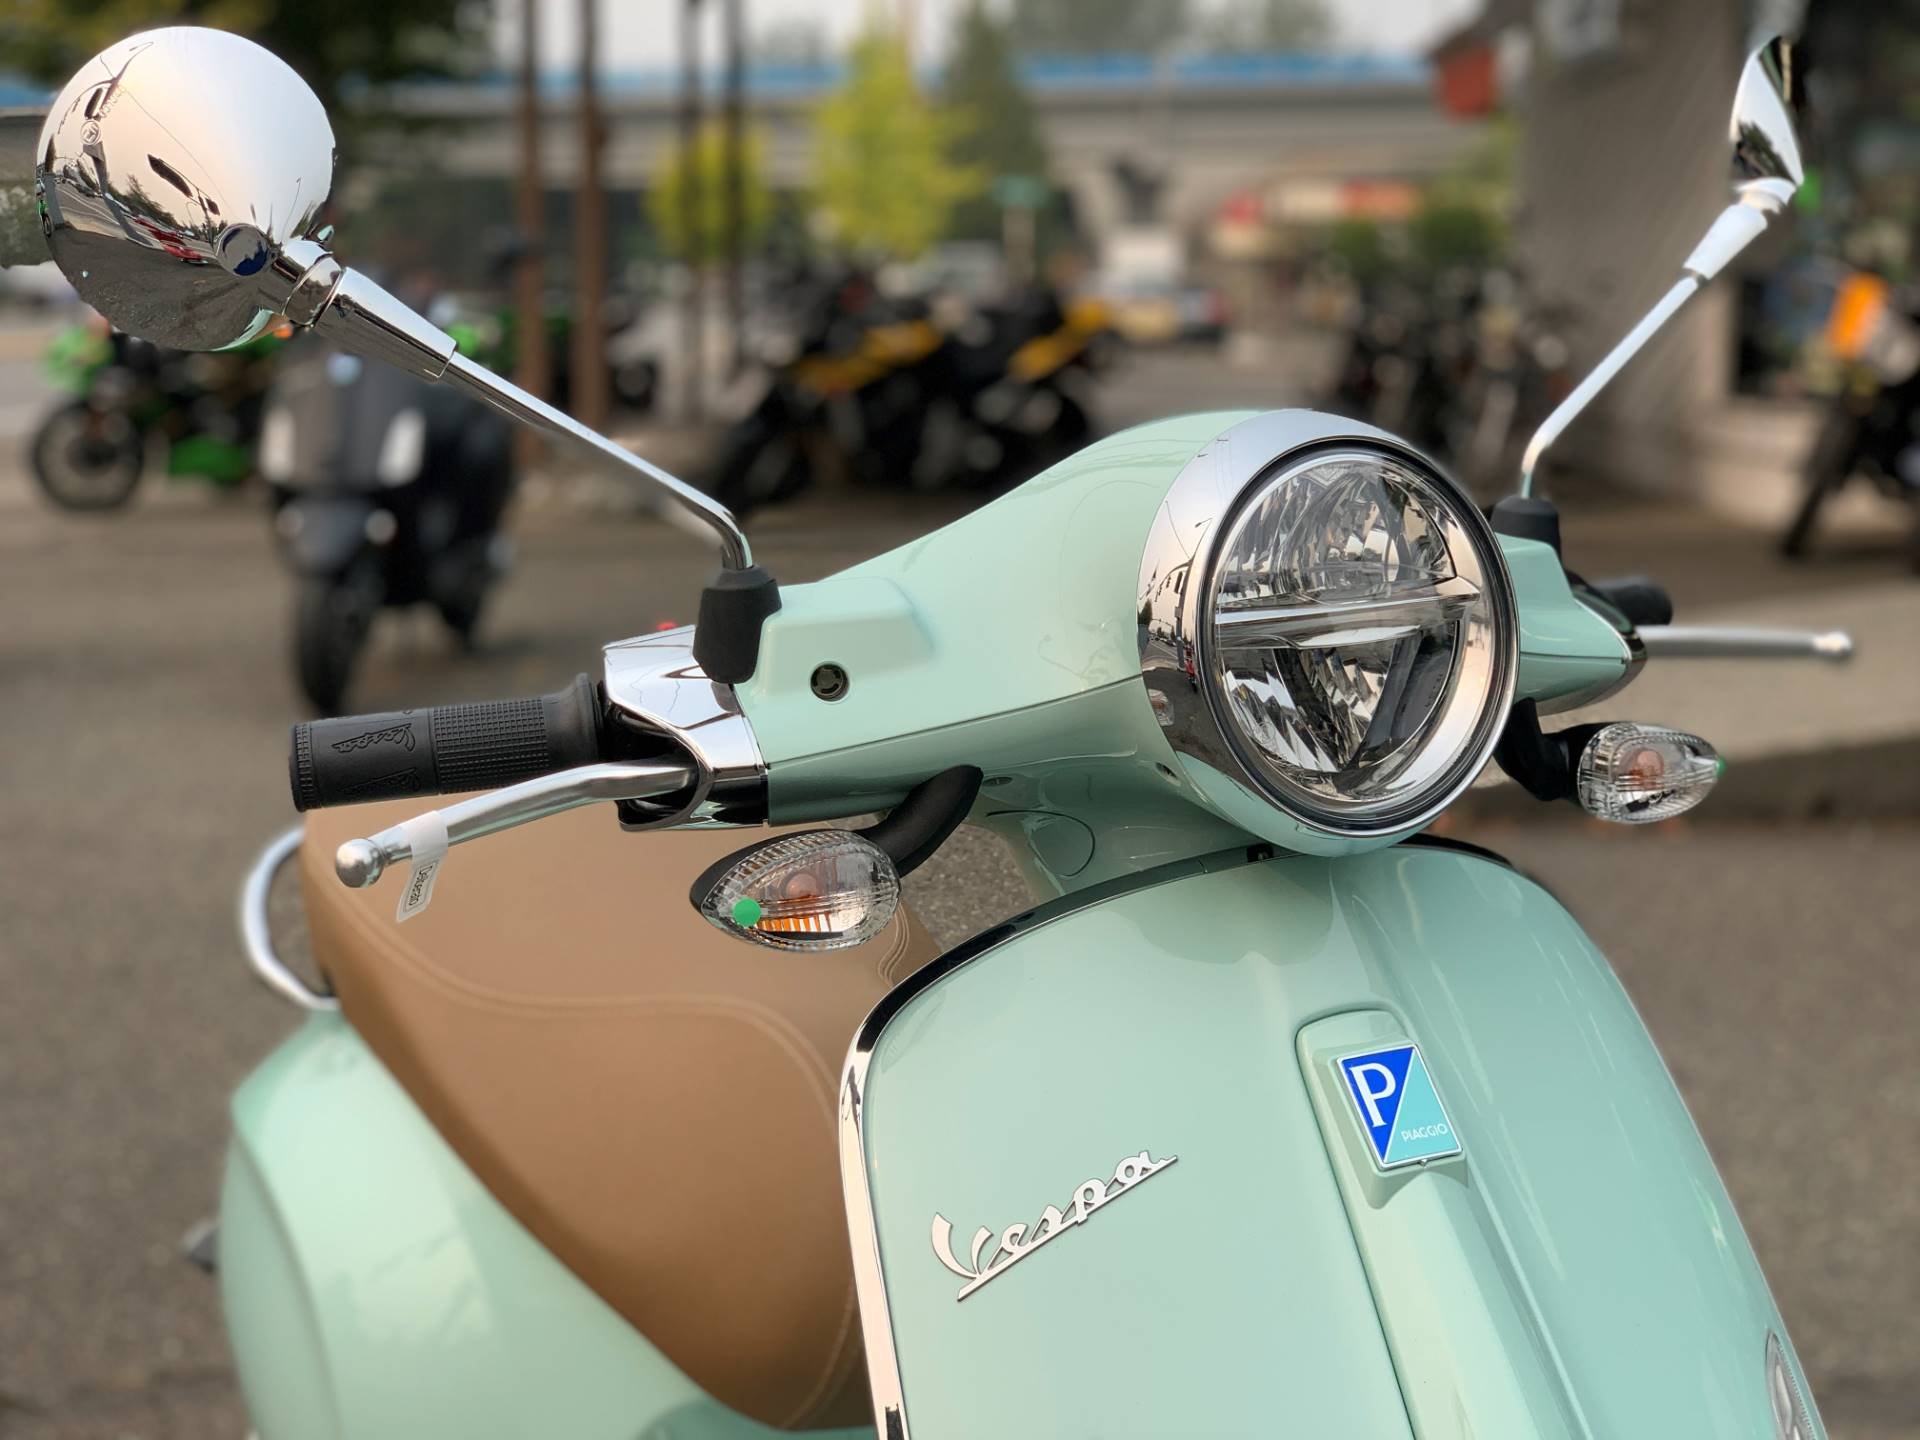 2020 Vespa Primavera 150 in Bellevue, Washington - Photo 2